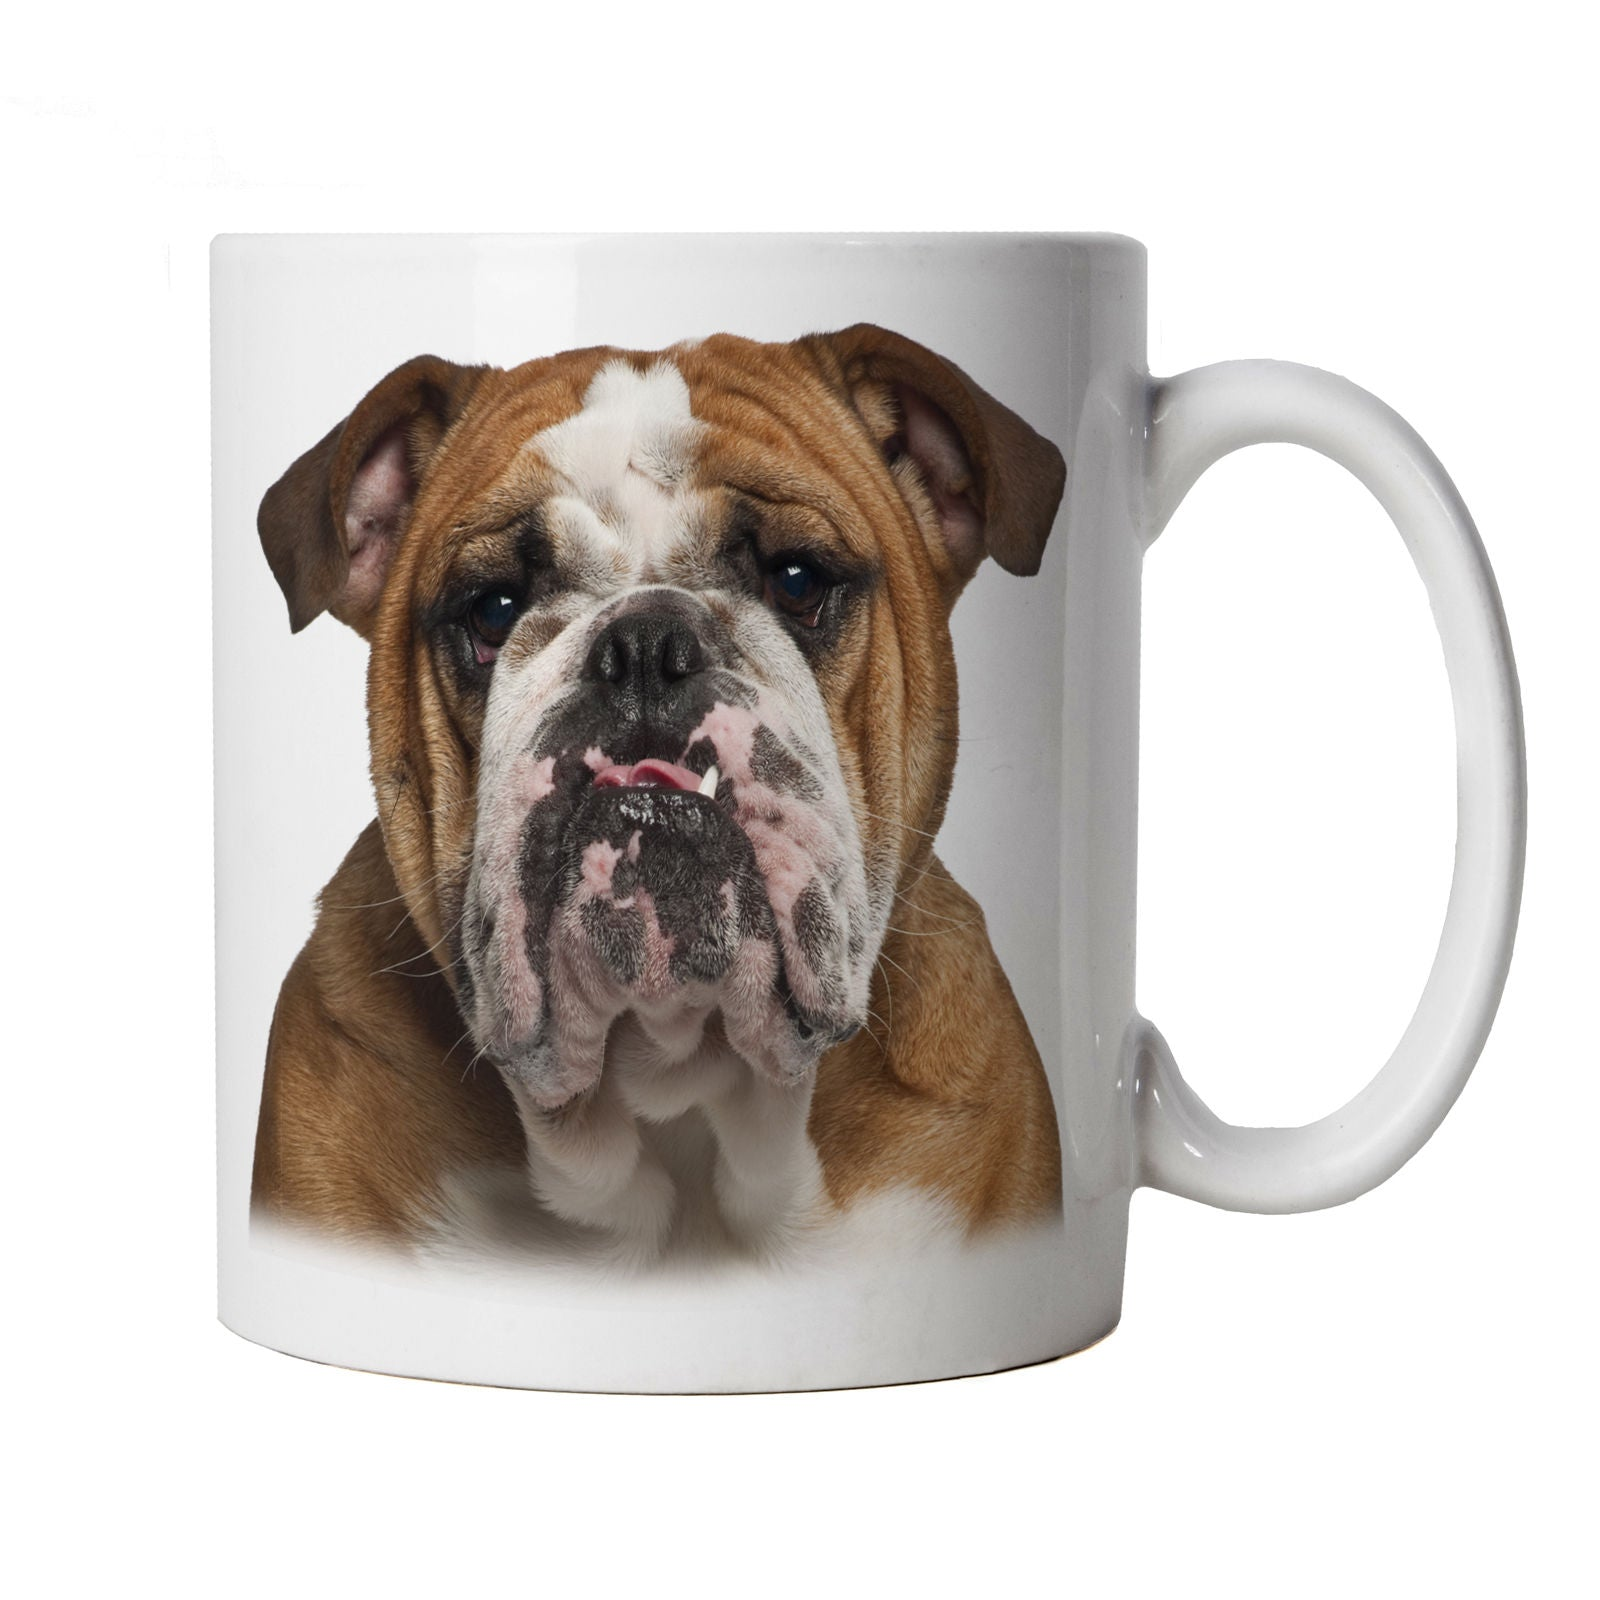 British Bulldog, Dog Mug